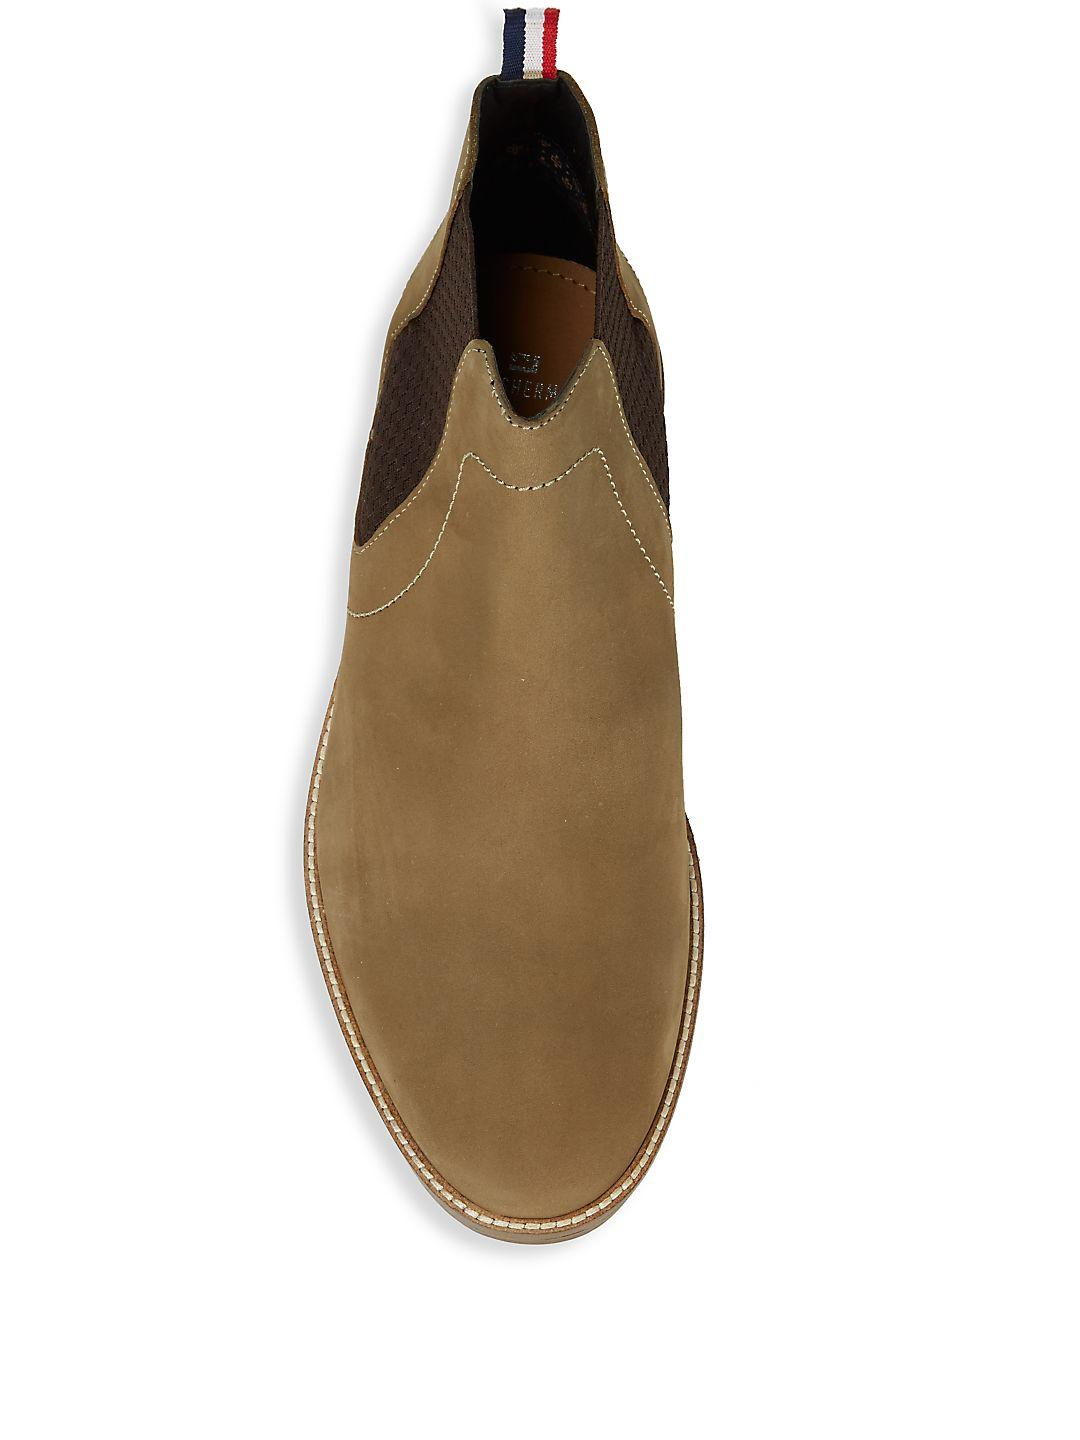 Ben Sherman Gabe Leather Chelsea Boots in Taupe (Brown)